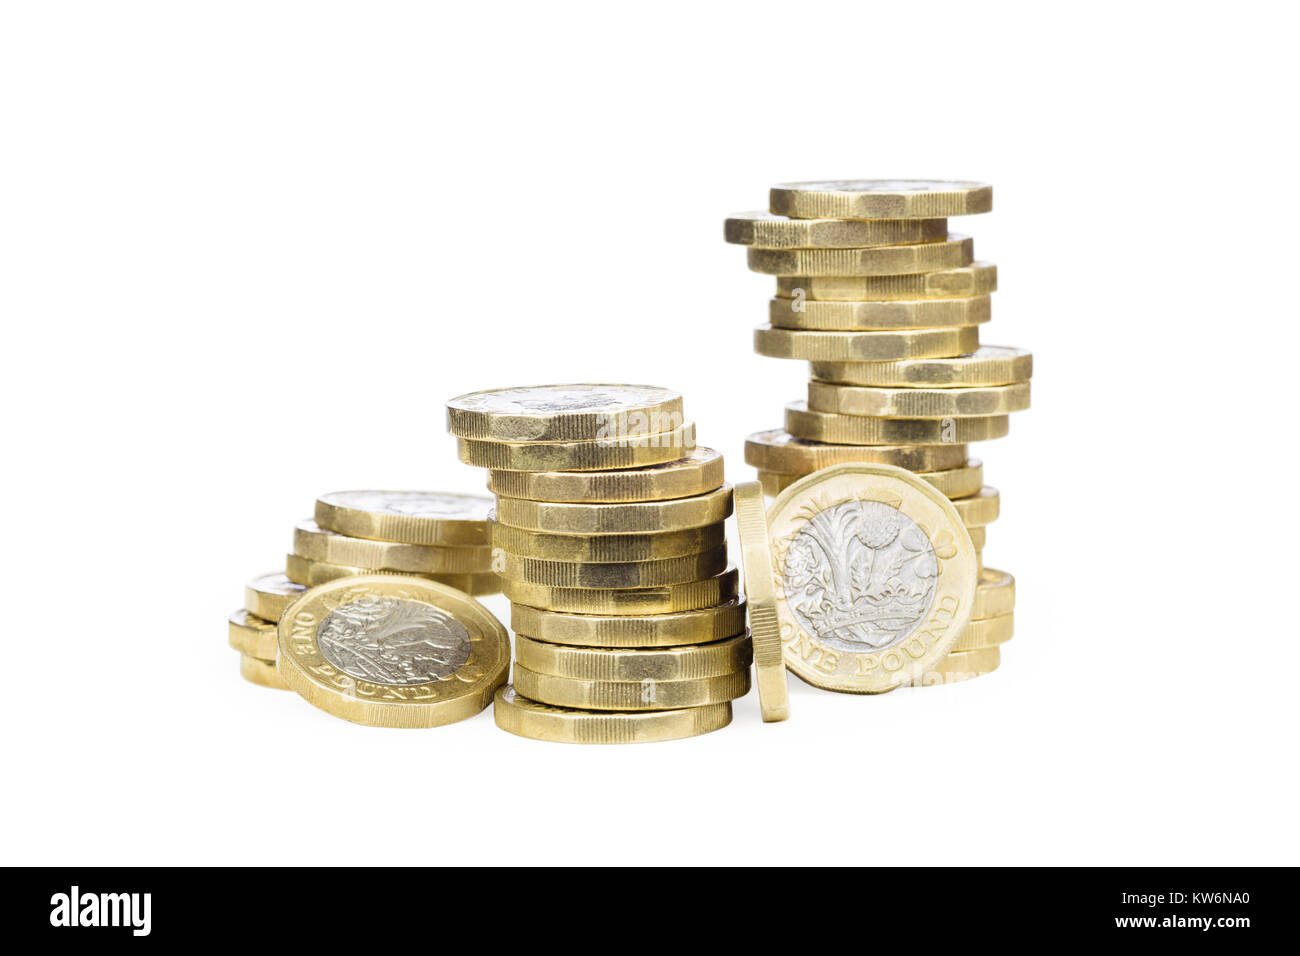 wobbly piles of uk sterling pound coins - Stock Image